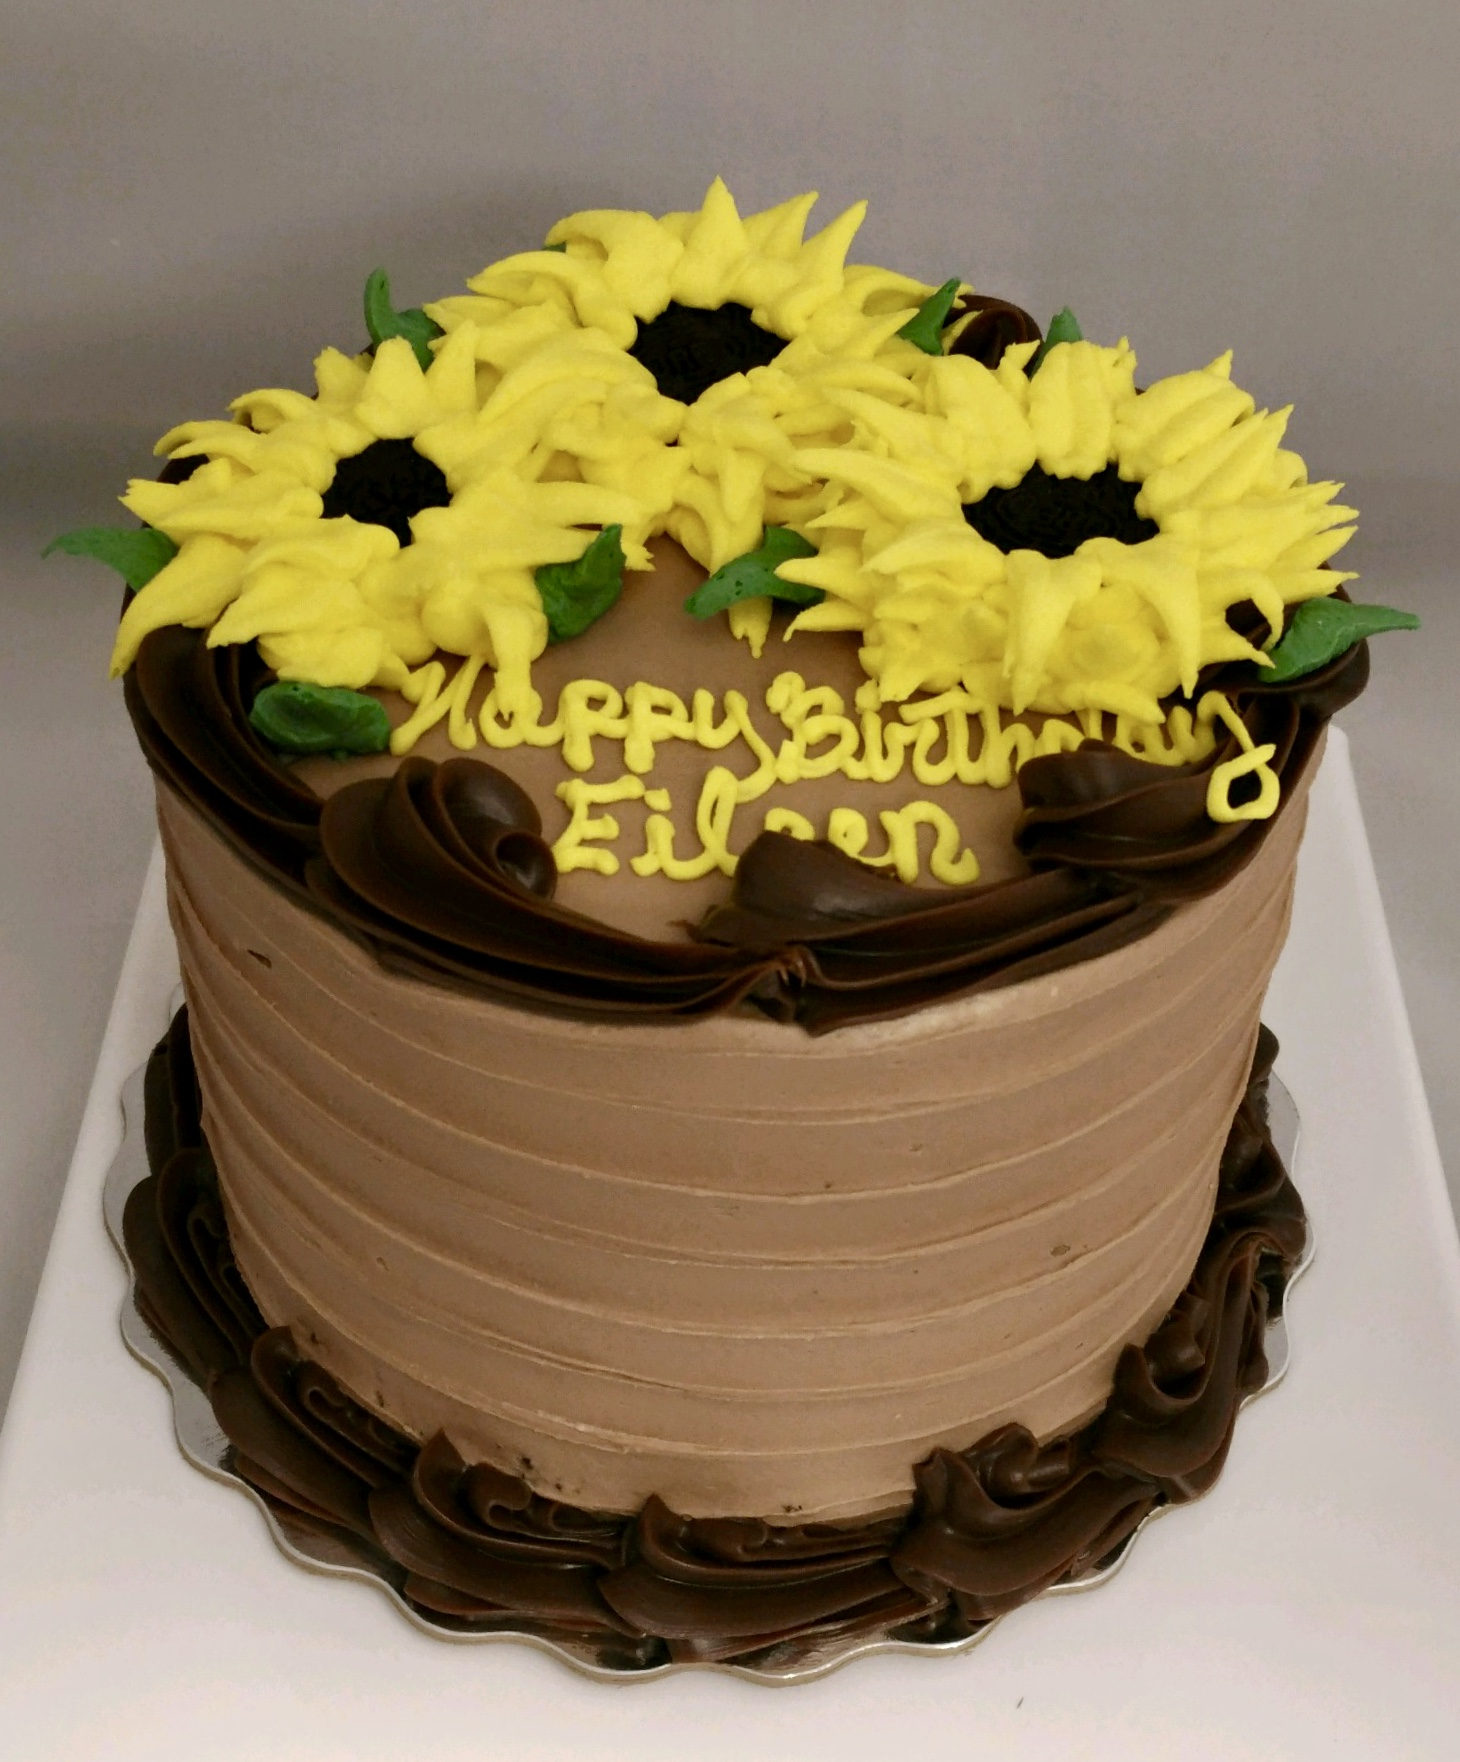 BirthChBCsunflowers.JPG